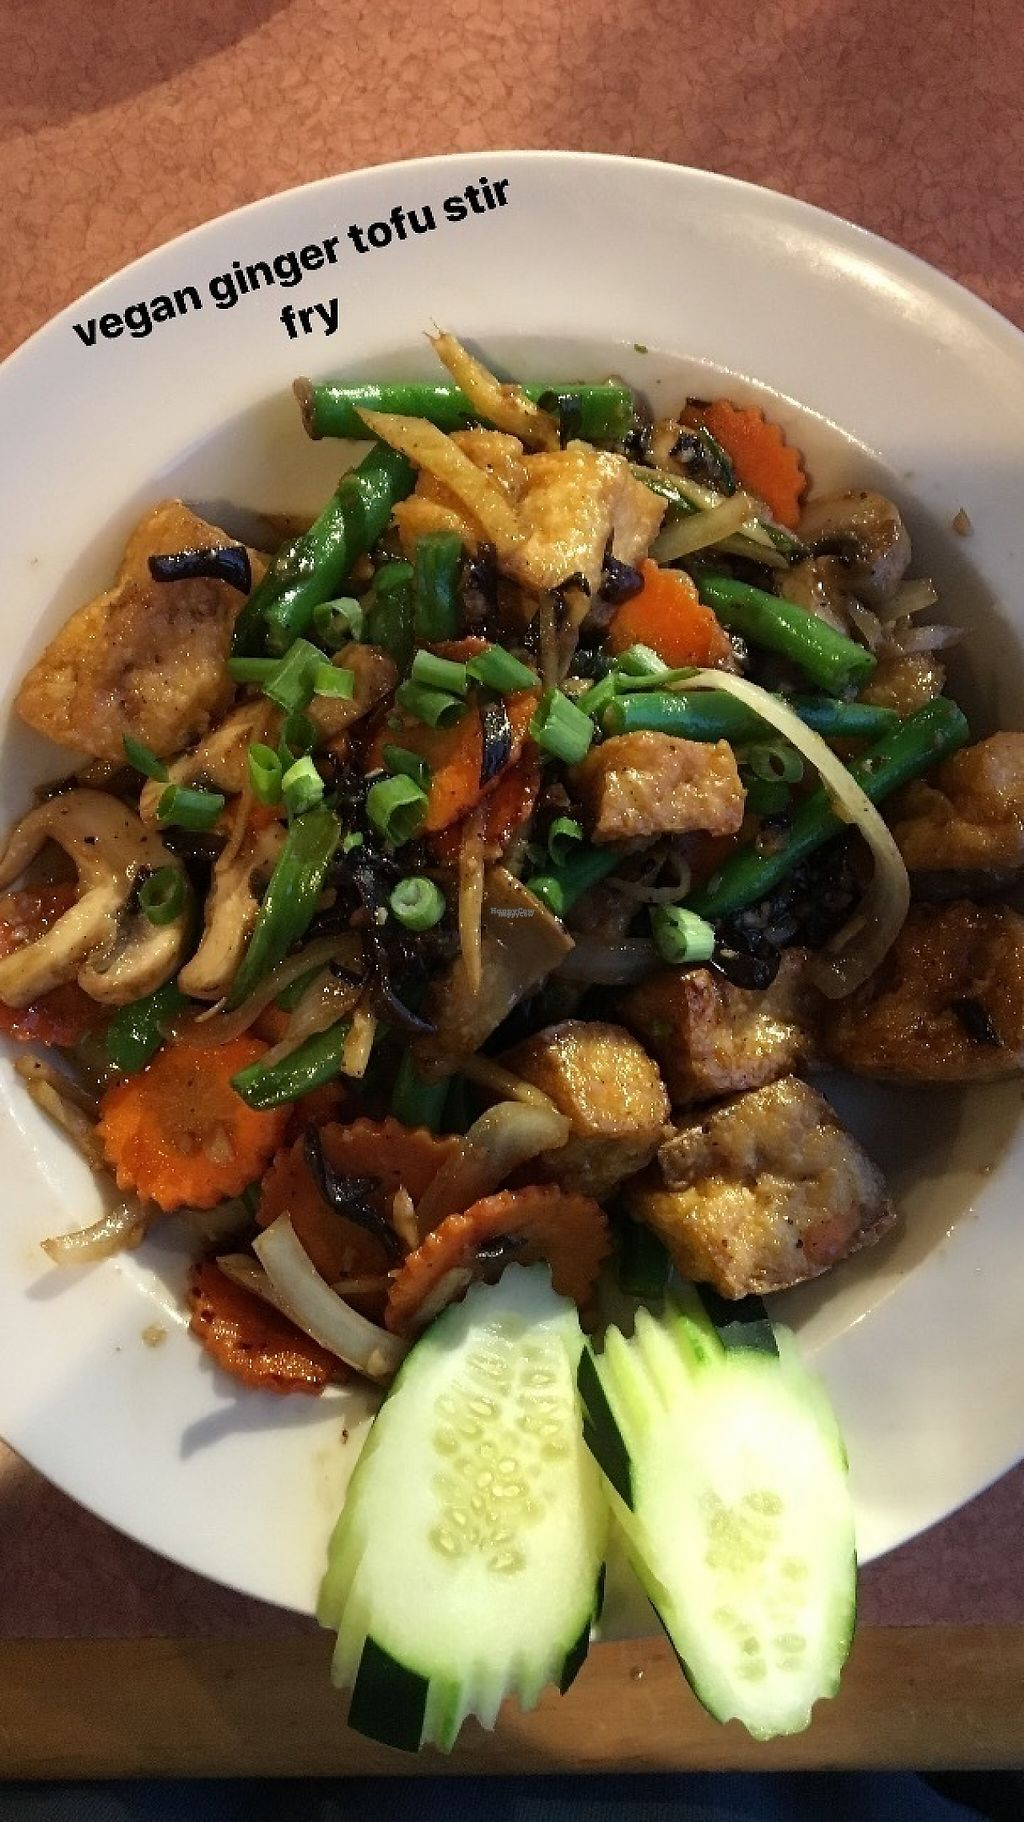 "Photo of Tiny Thai Restaurant  by <a href=""/members/profile/joannaidk"">joannaidk</a> <br/>ginger tofu stir fry <br/> April 16, 2017  - <a href='/contact/abuse/image/82698/249031'>Report</a>"